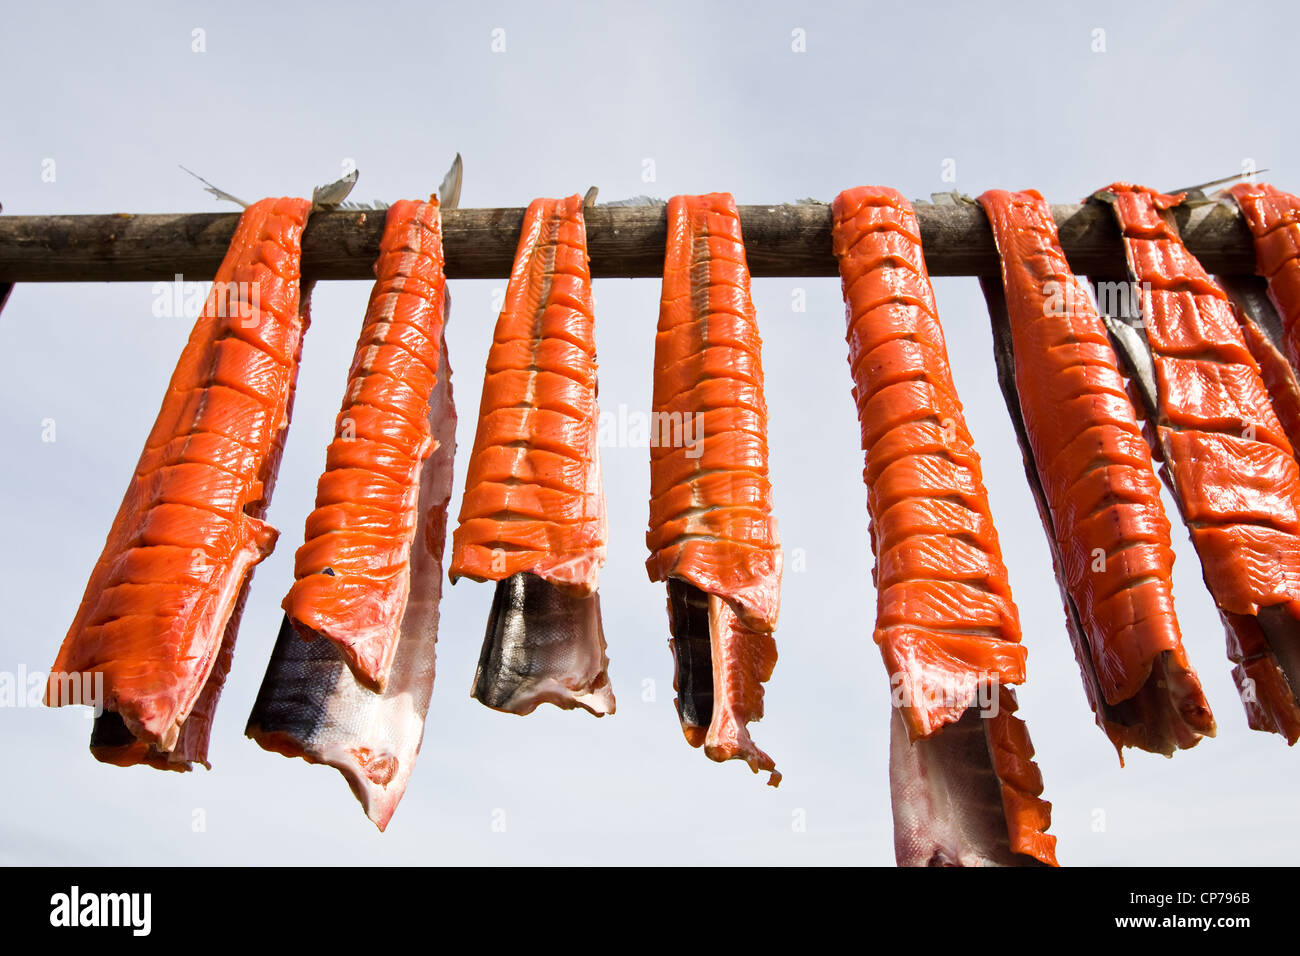 Subsistance caught Bristol Bay Sockeye salmon drying on a rack, Iliamna, Southwest Alaska, Summer - Stock Image